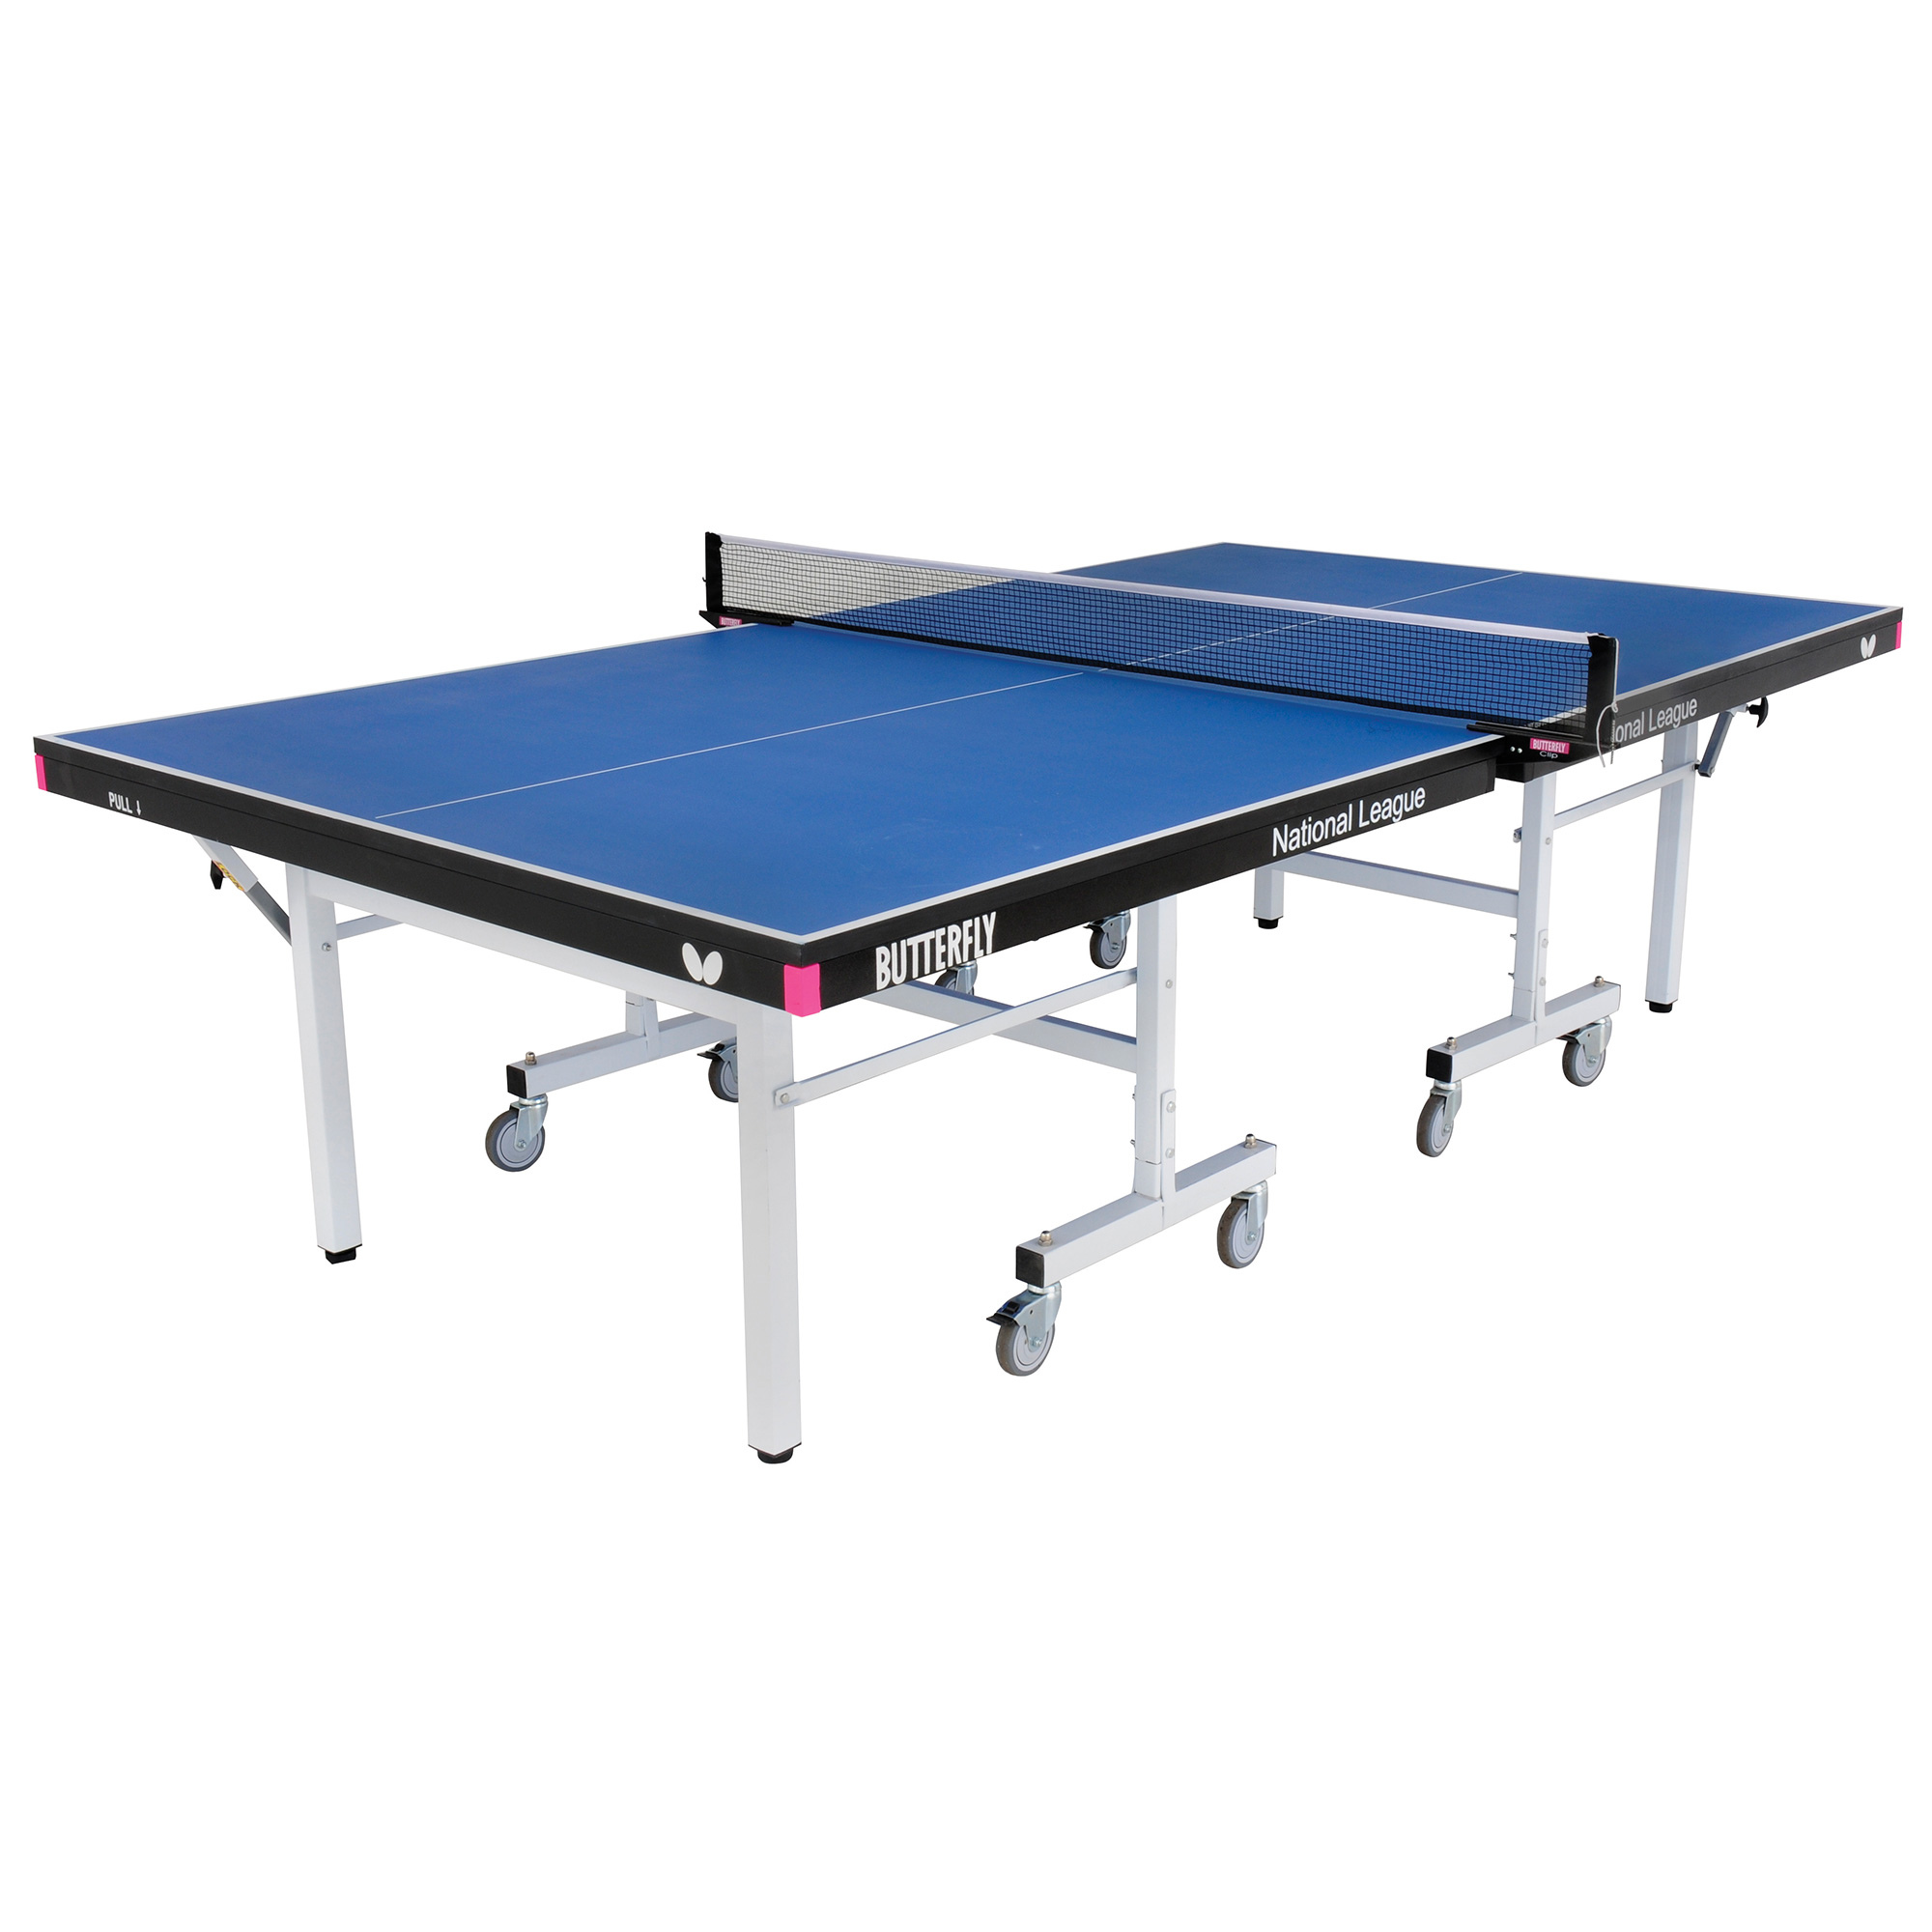 Butterfly National League 25 Rollaway Indoor Table Tennis Table  Blue